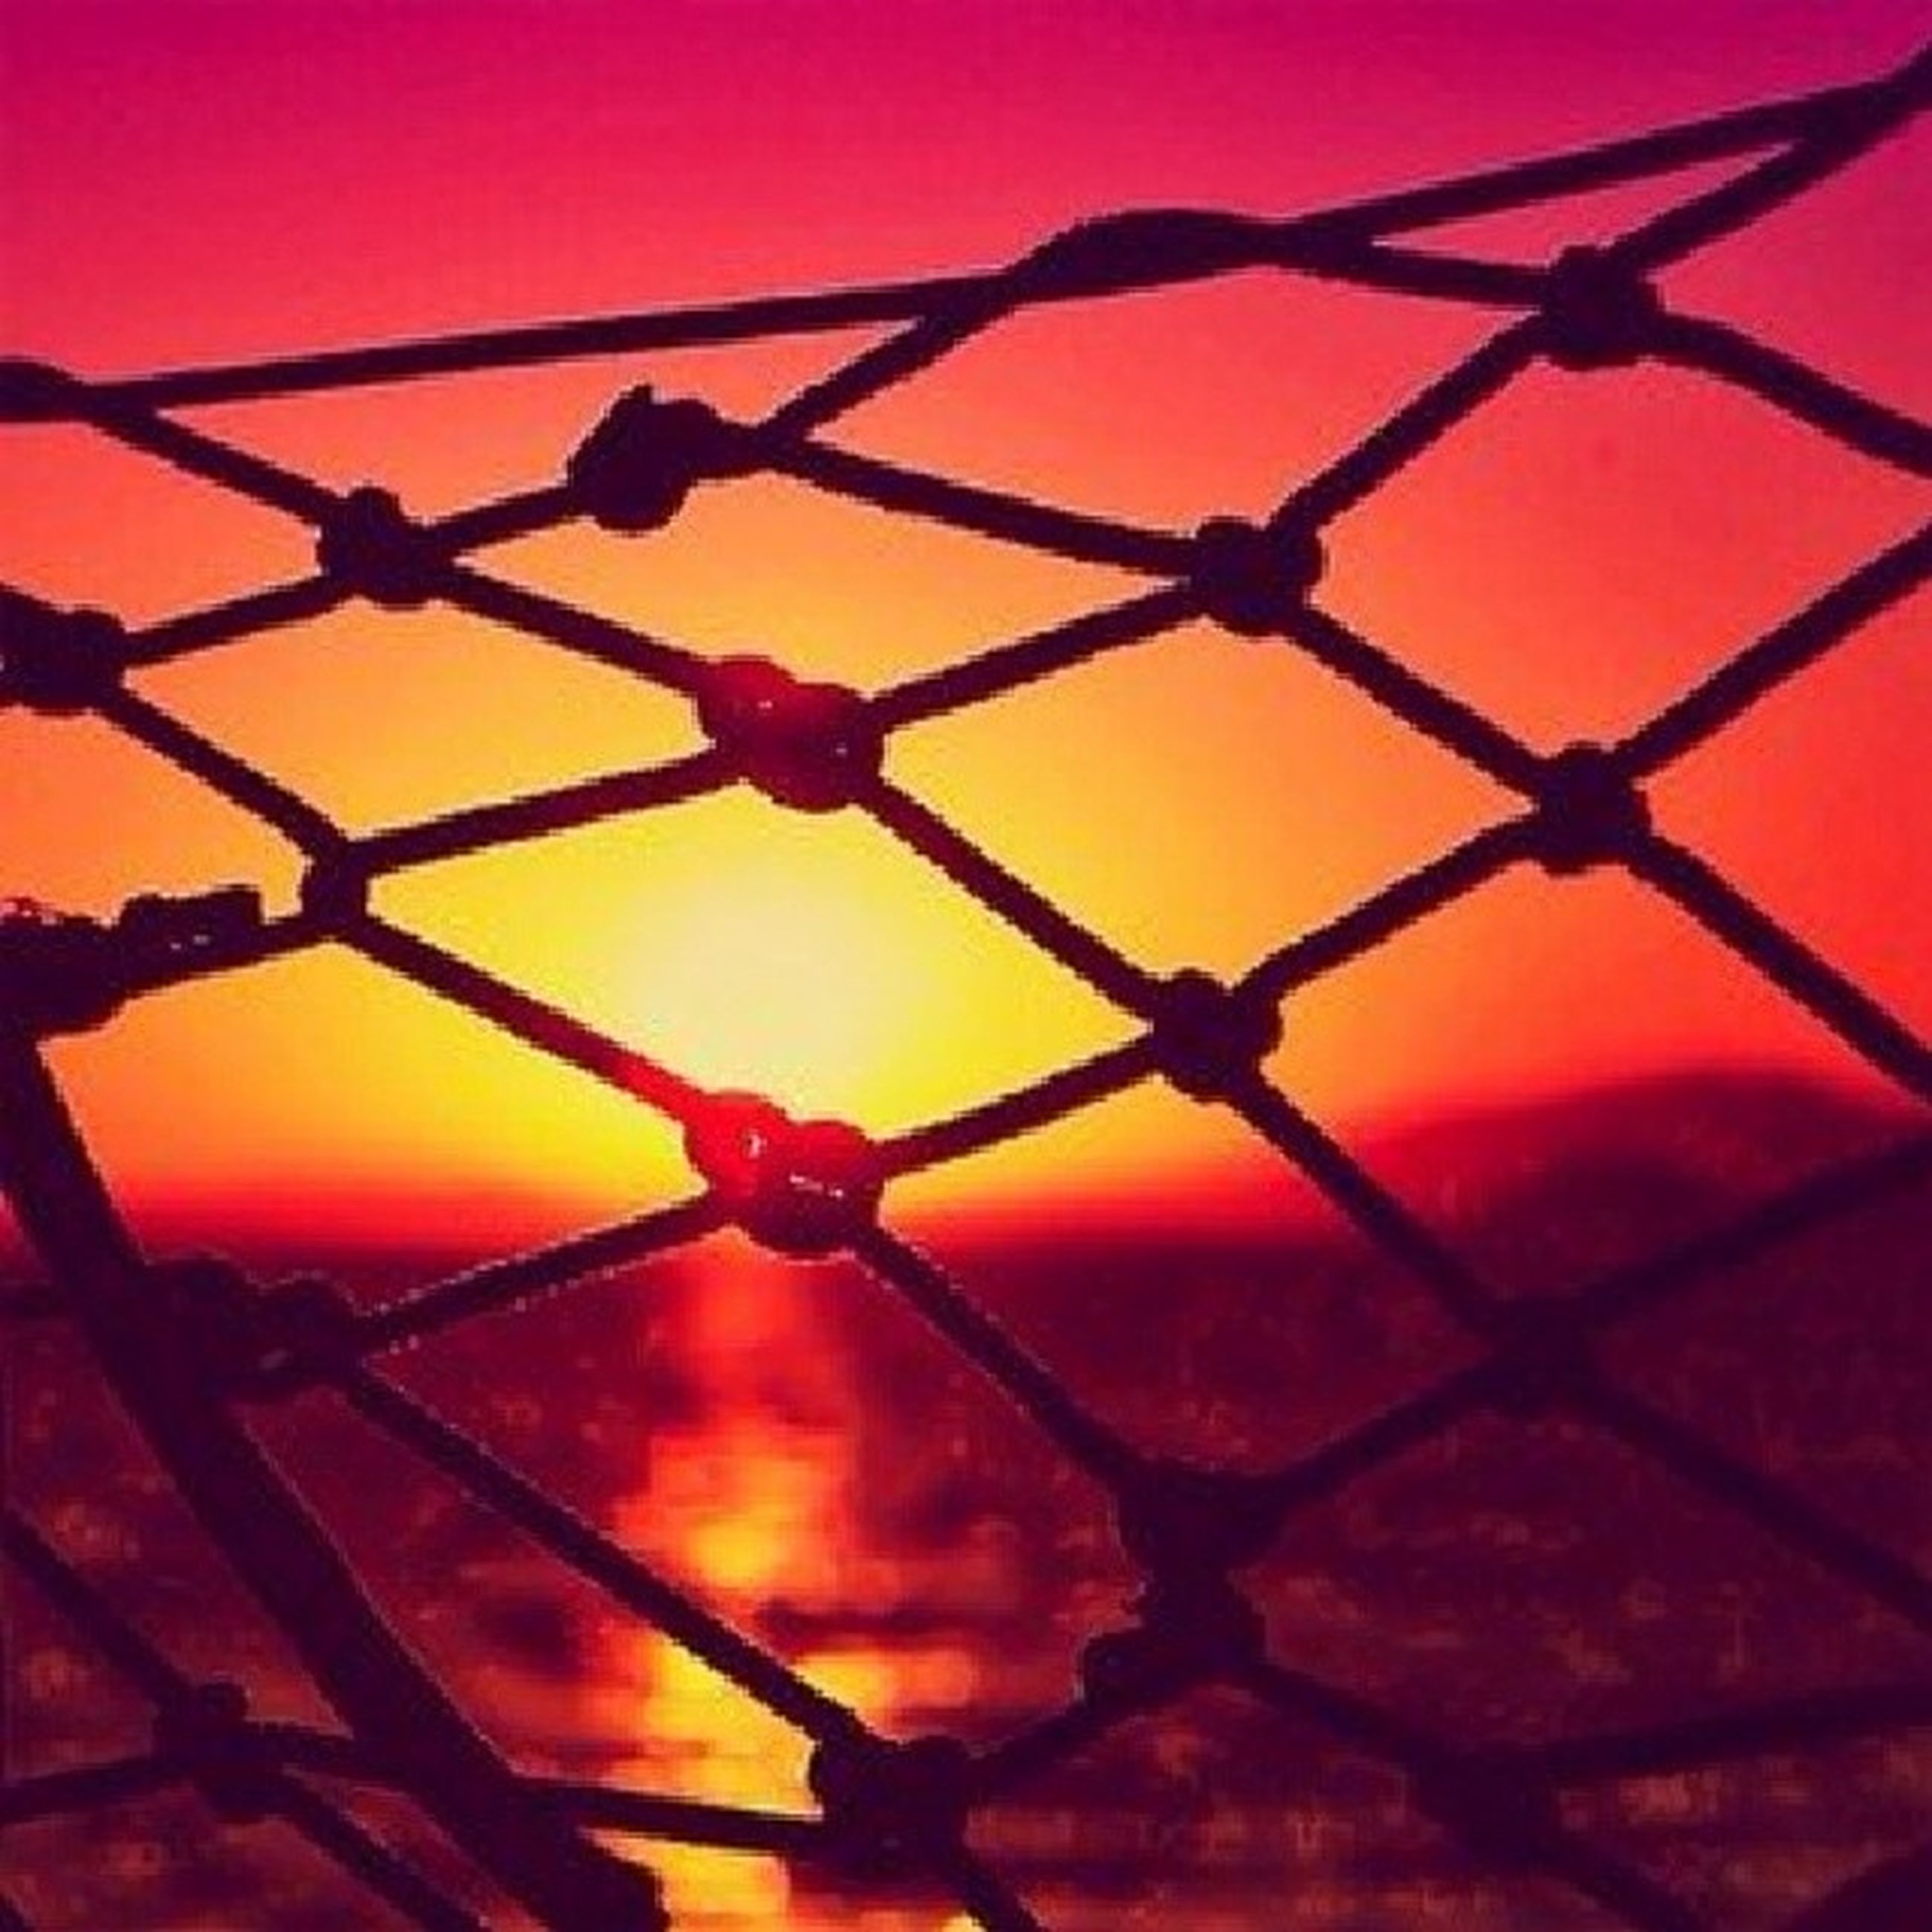 metal, protection, safety, sunset, orange color, chainlink fence, security, metallic, fence, sky, low angle view, pattern, red, sun, no people, close-up, outdoors, silhouette, sunlight, backgrounds